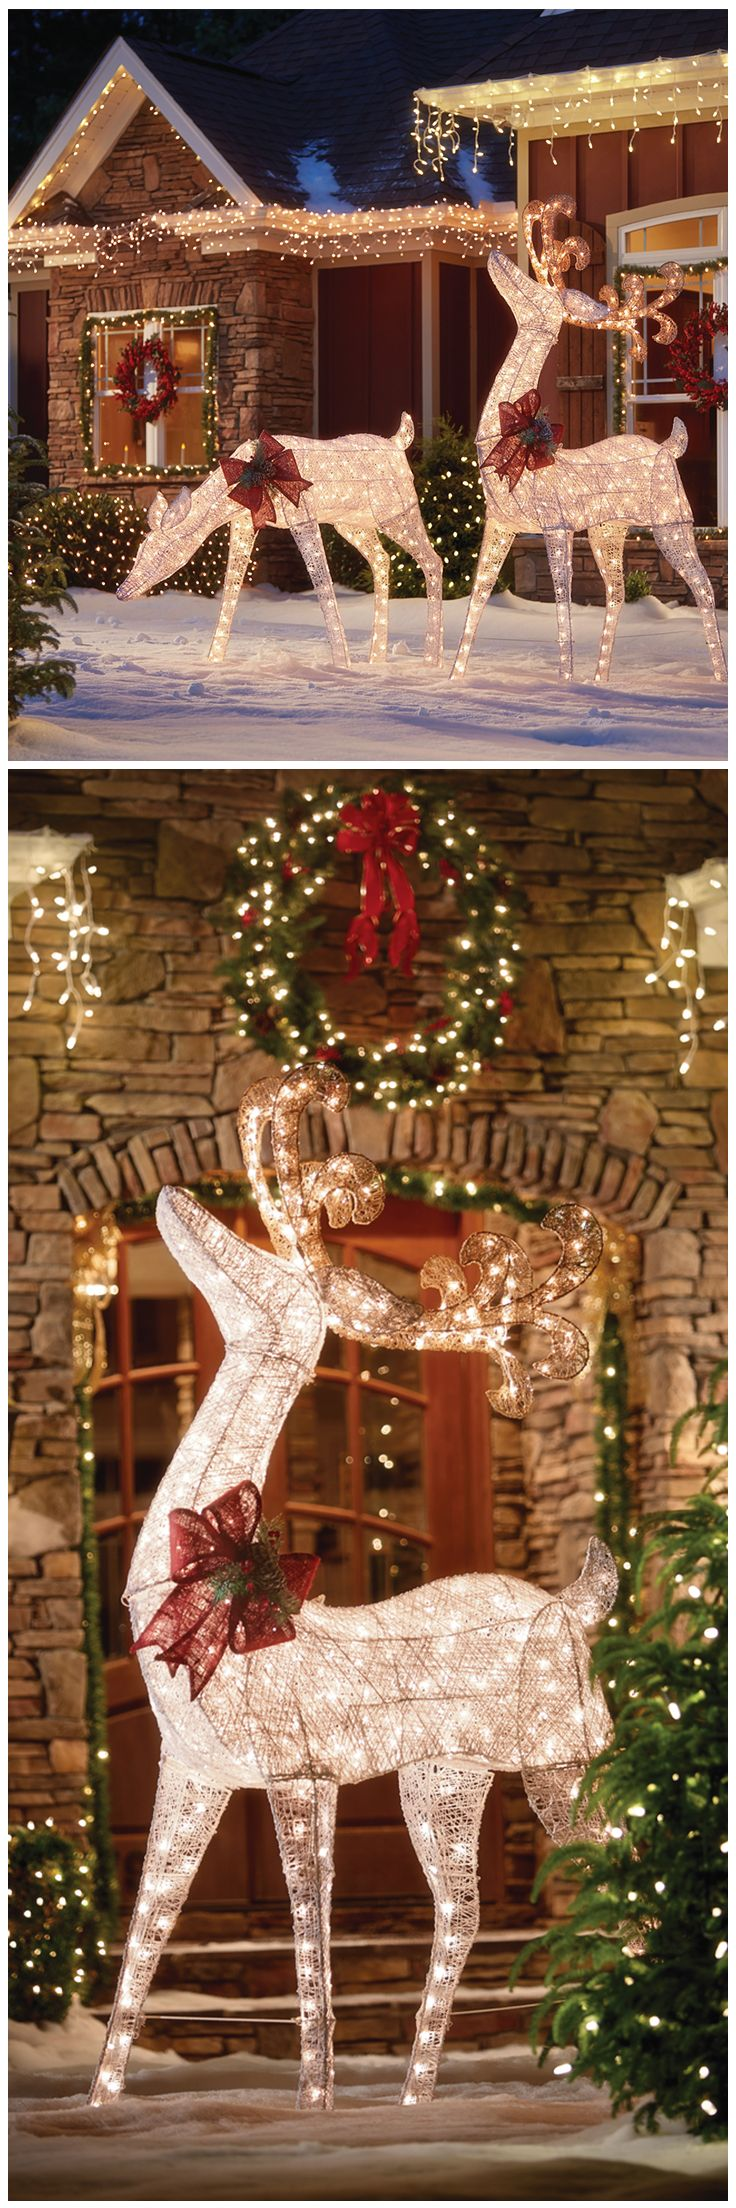 Make your own outdoor christmas decorations - These Luminous Deer Figures Will Add A Classic Rustic Charm To Your Outdoor Christmas D Cor